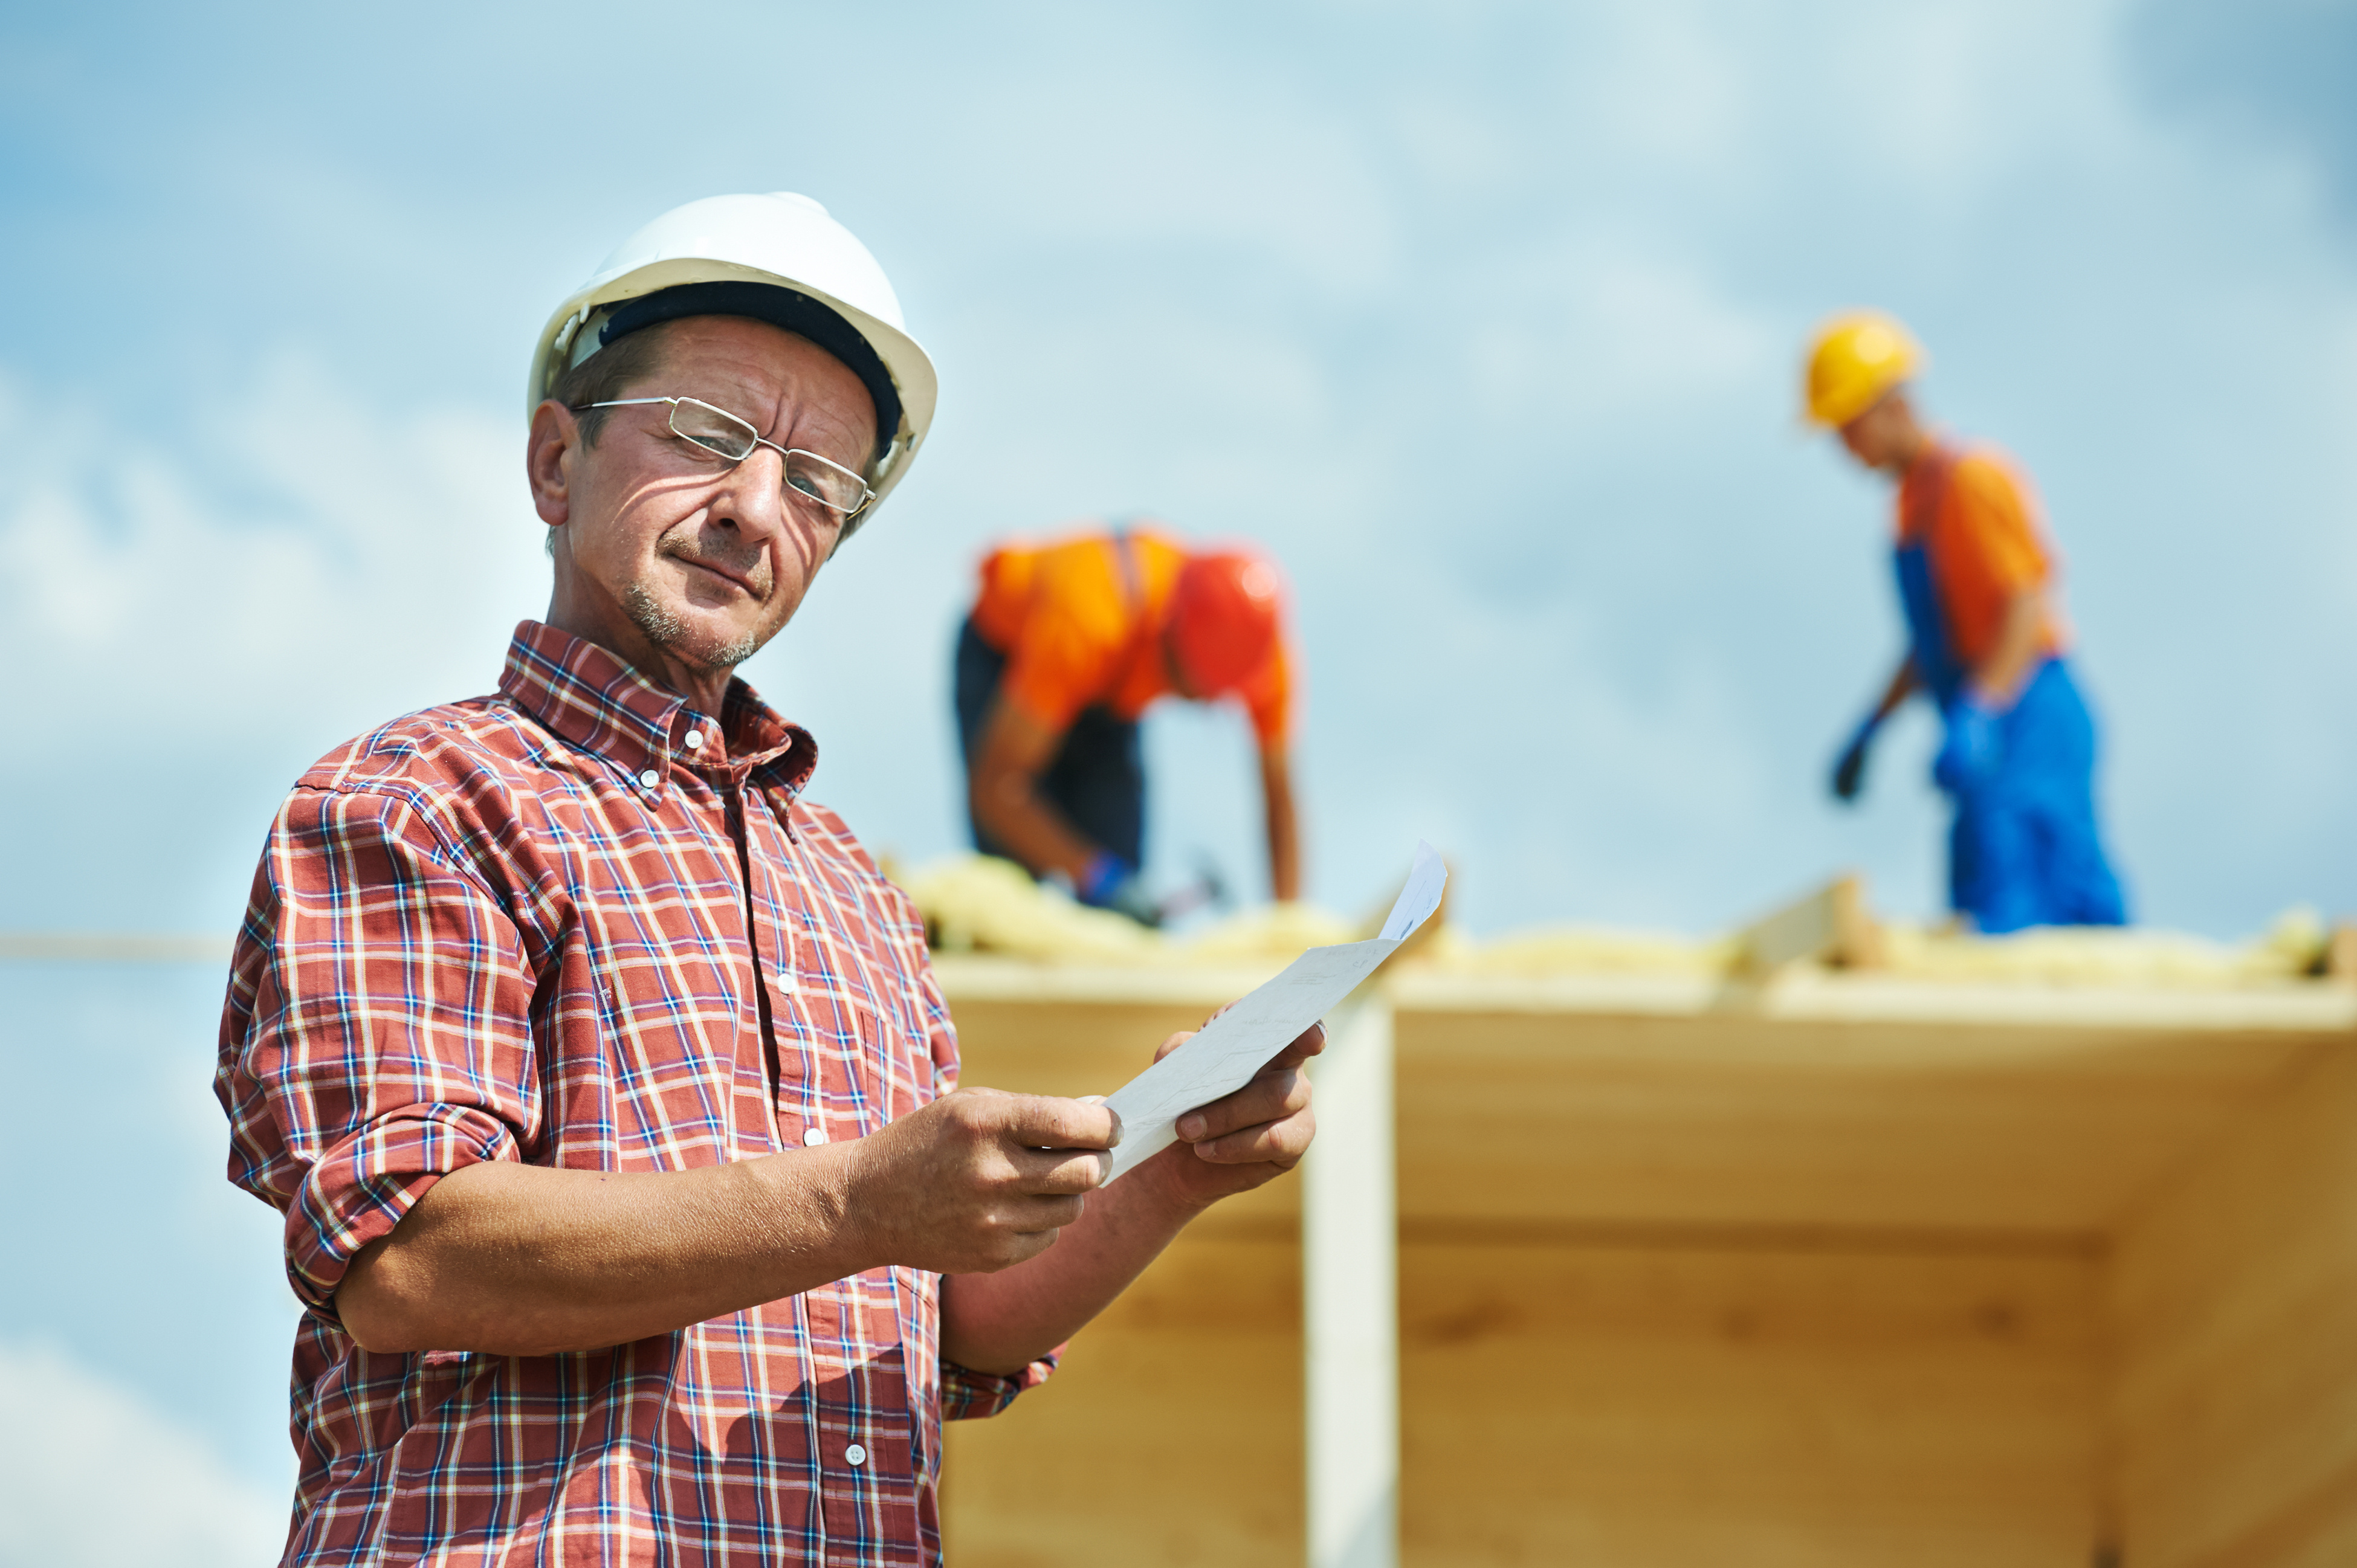 Roofing Company Gaithersburg Within Your Reach Cox